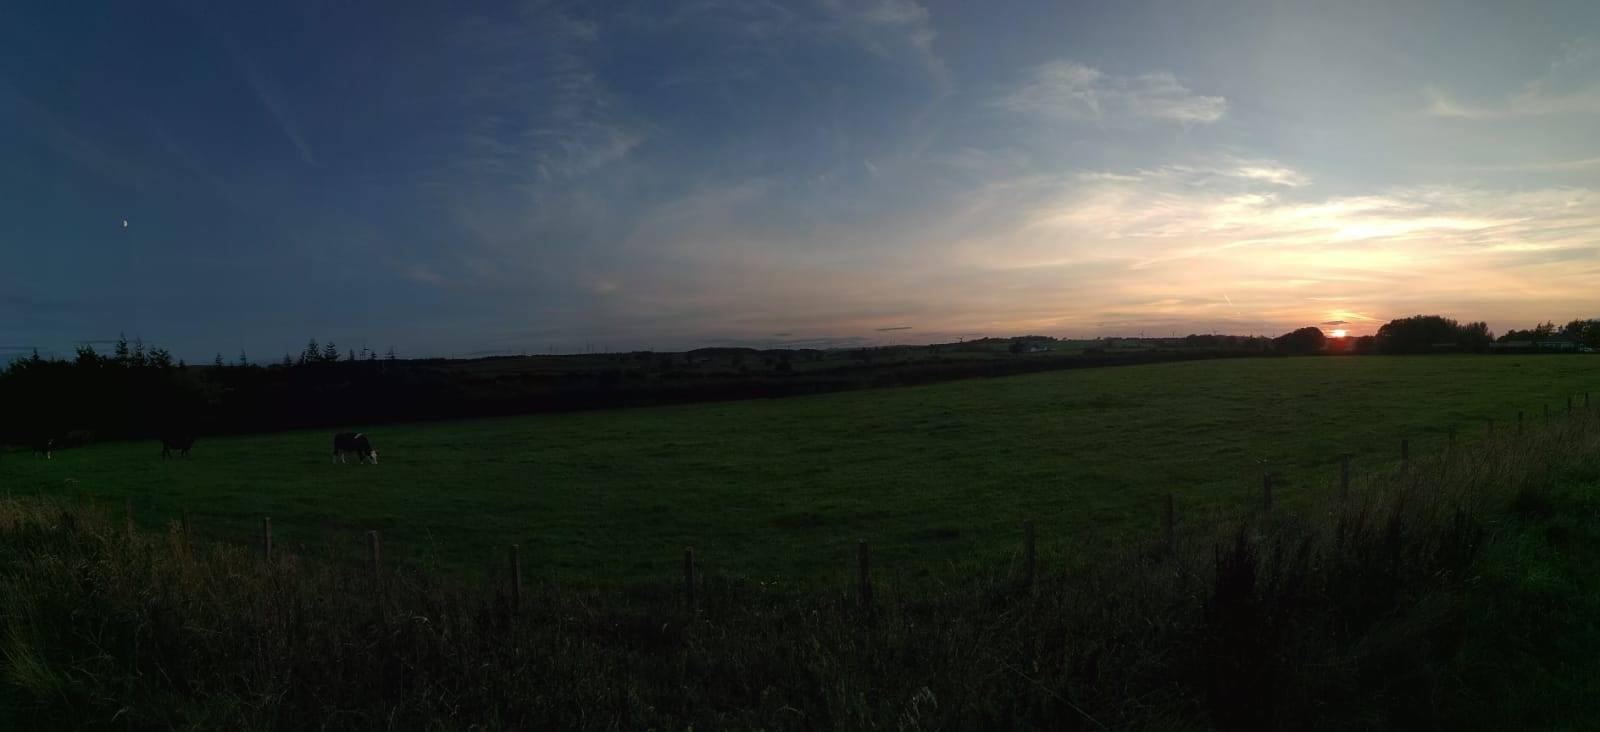 A photo of the Scottish countryside. The sky is split between the moon and the night on the left and the sunset on the right.